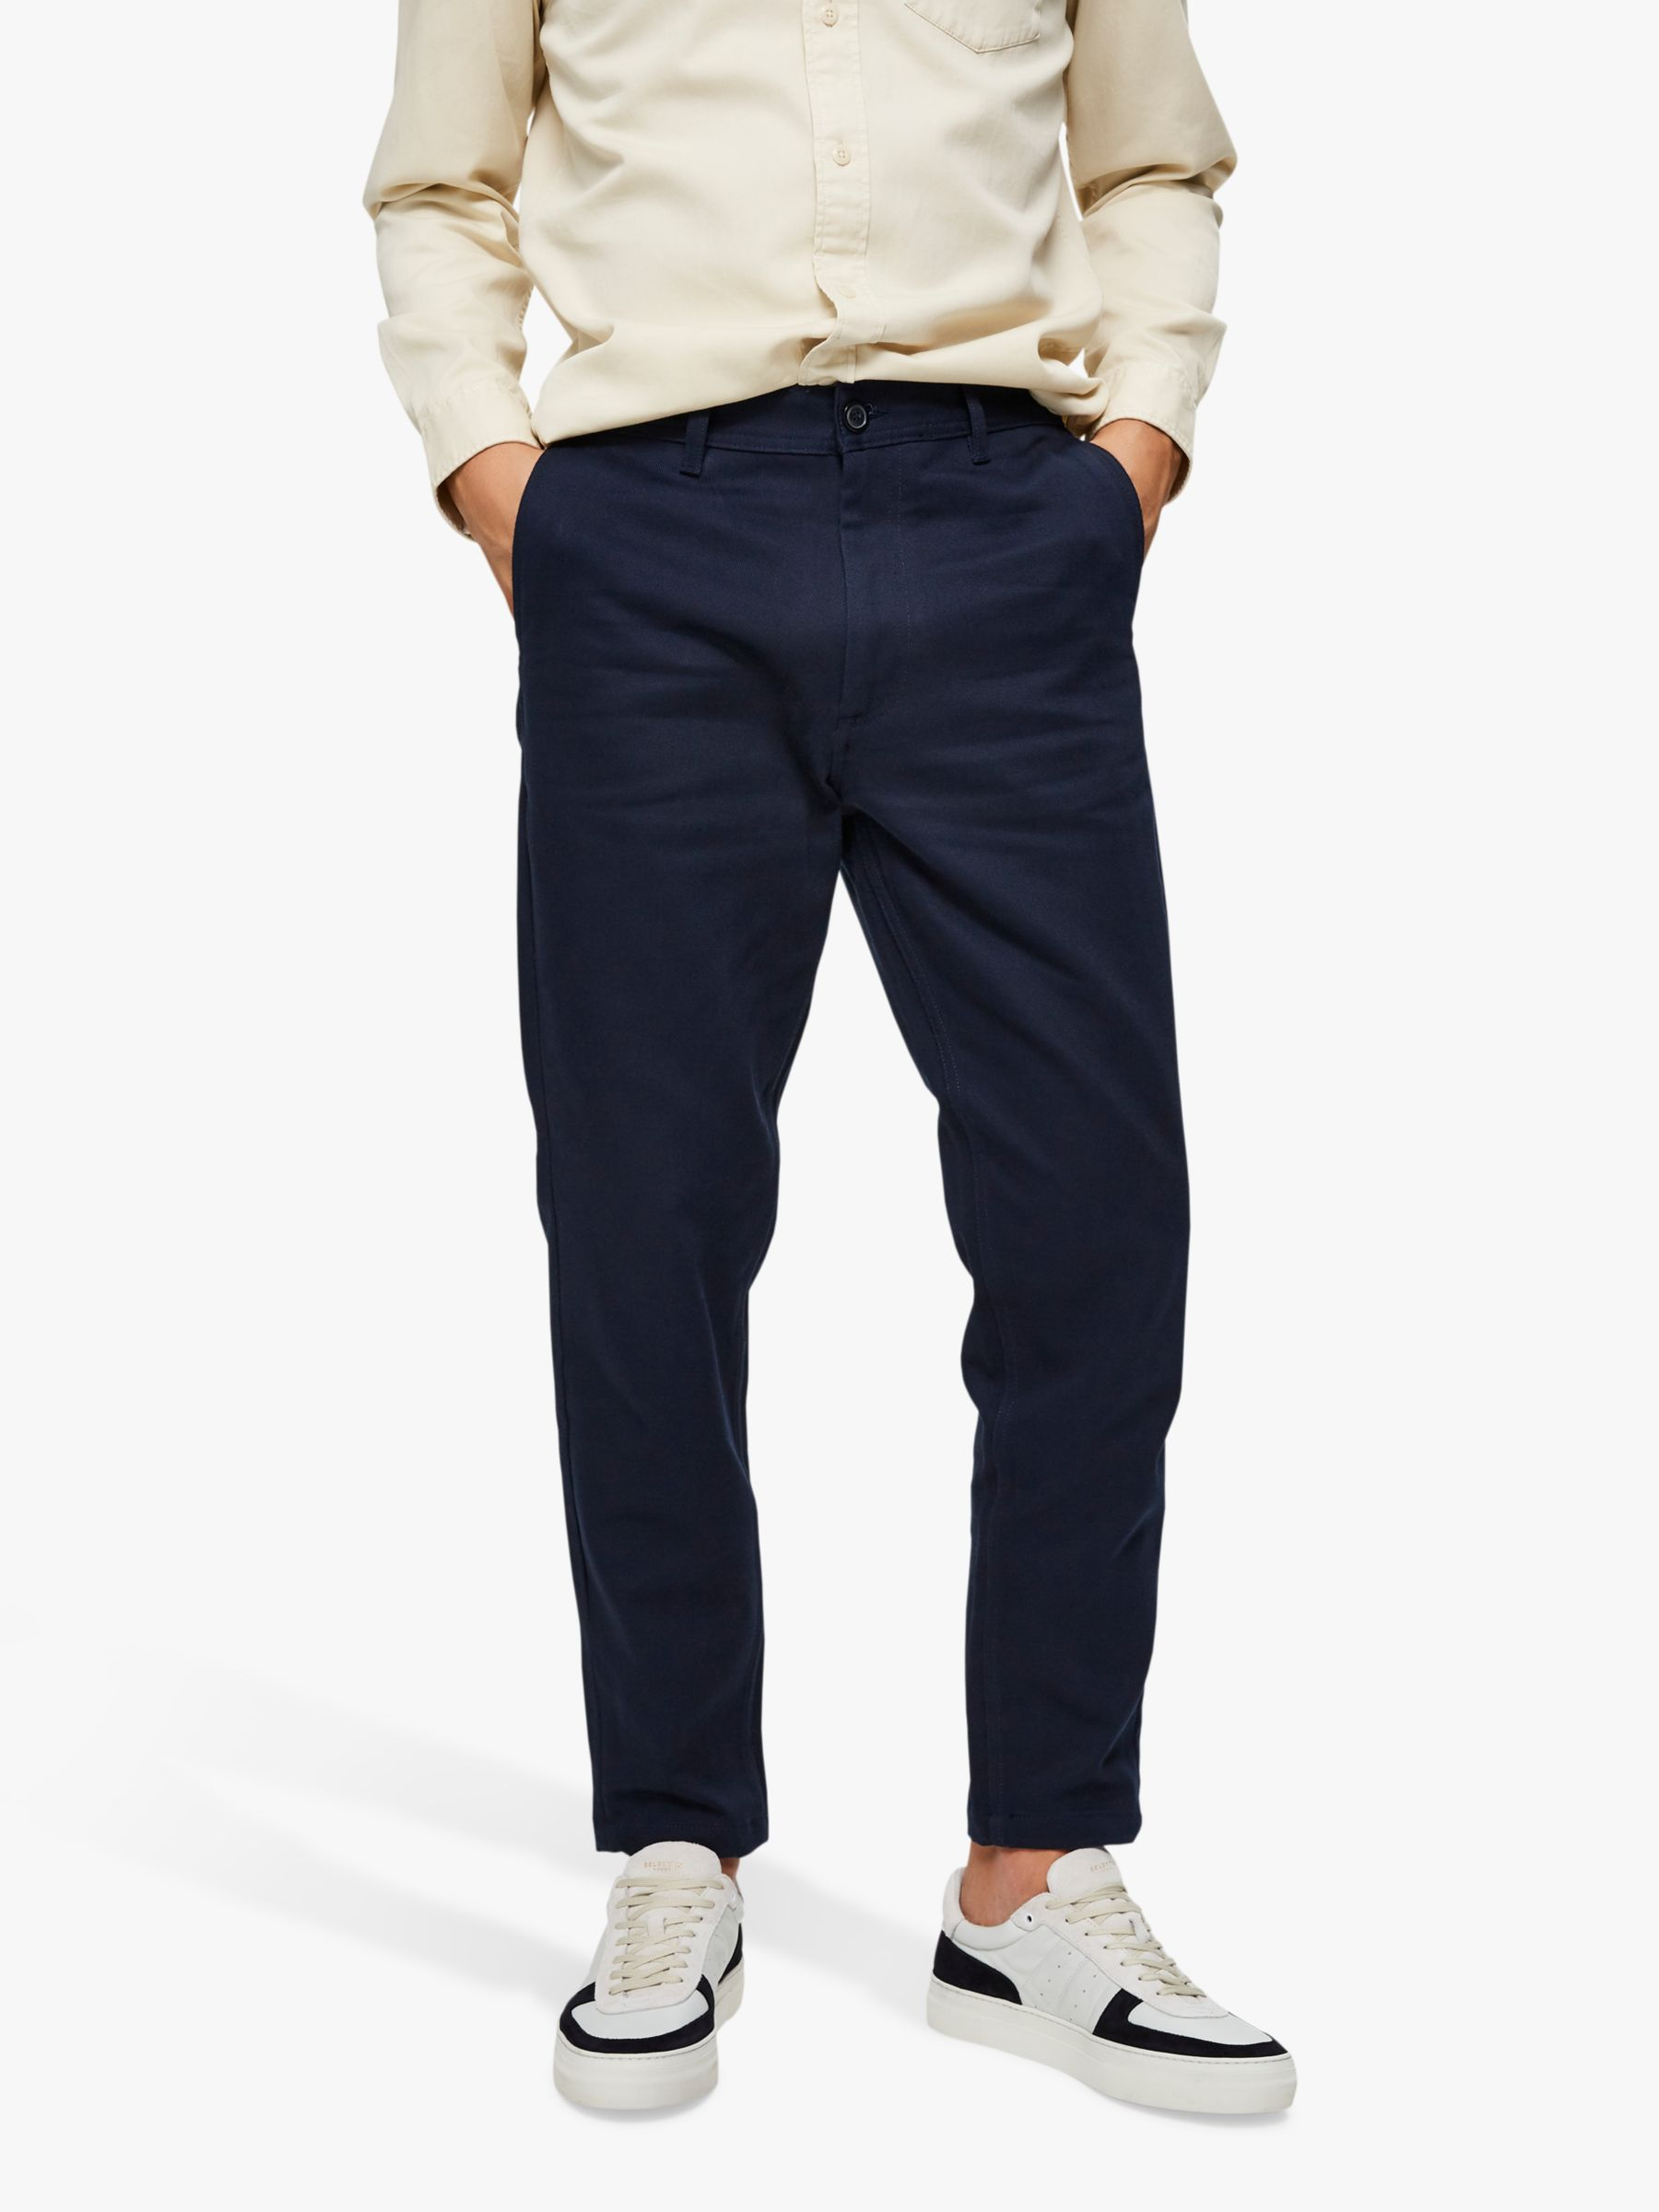 Selected Homme SELECTED HOMME Twill Slim Fit Trousers, Sky Captain